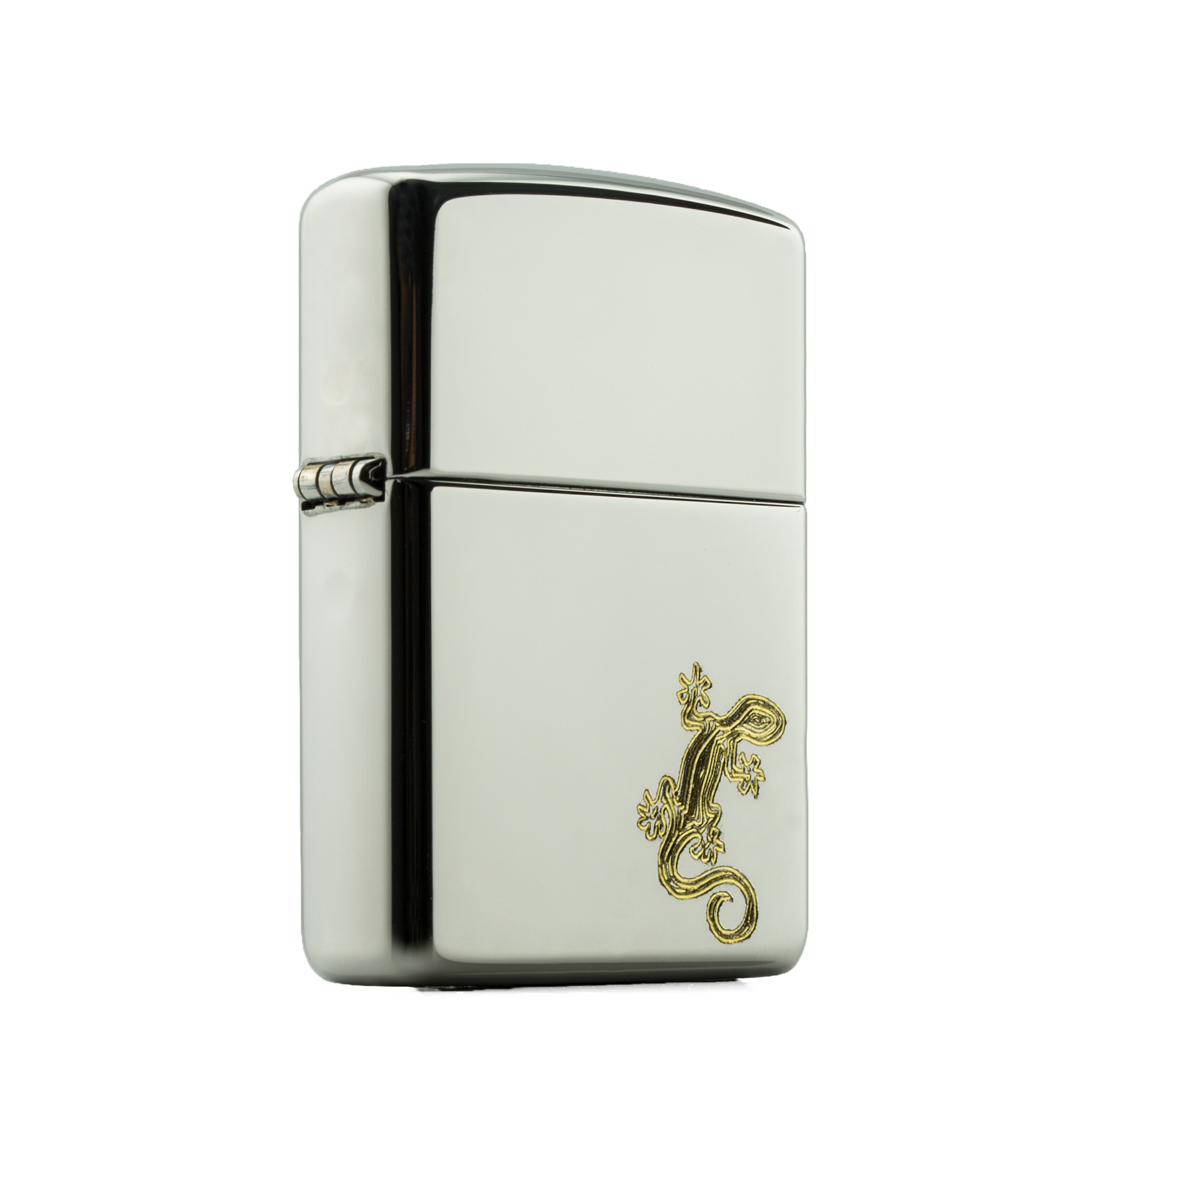 zippo-high-polish-chrome-khac-logo-lizard-than-lan-1